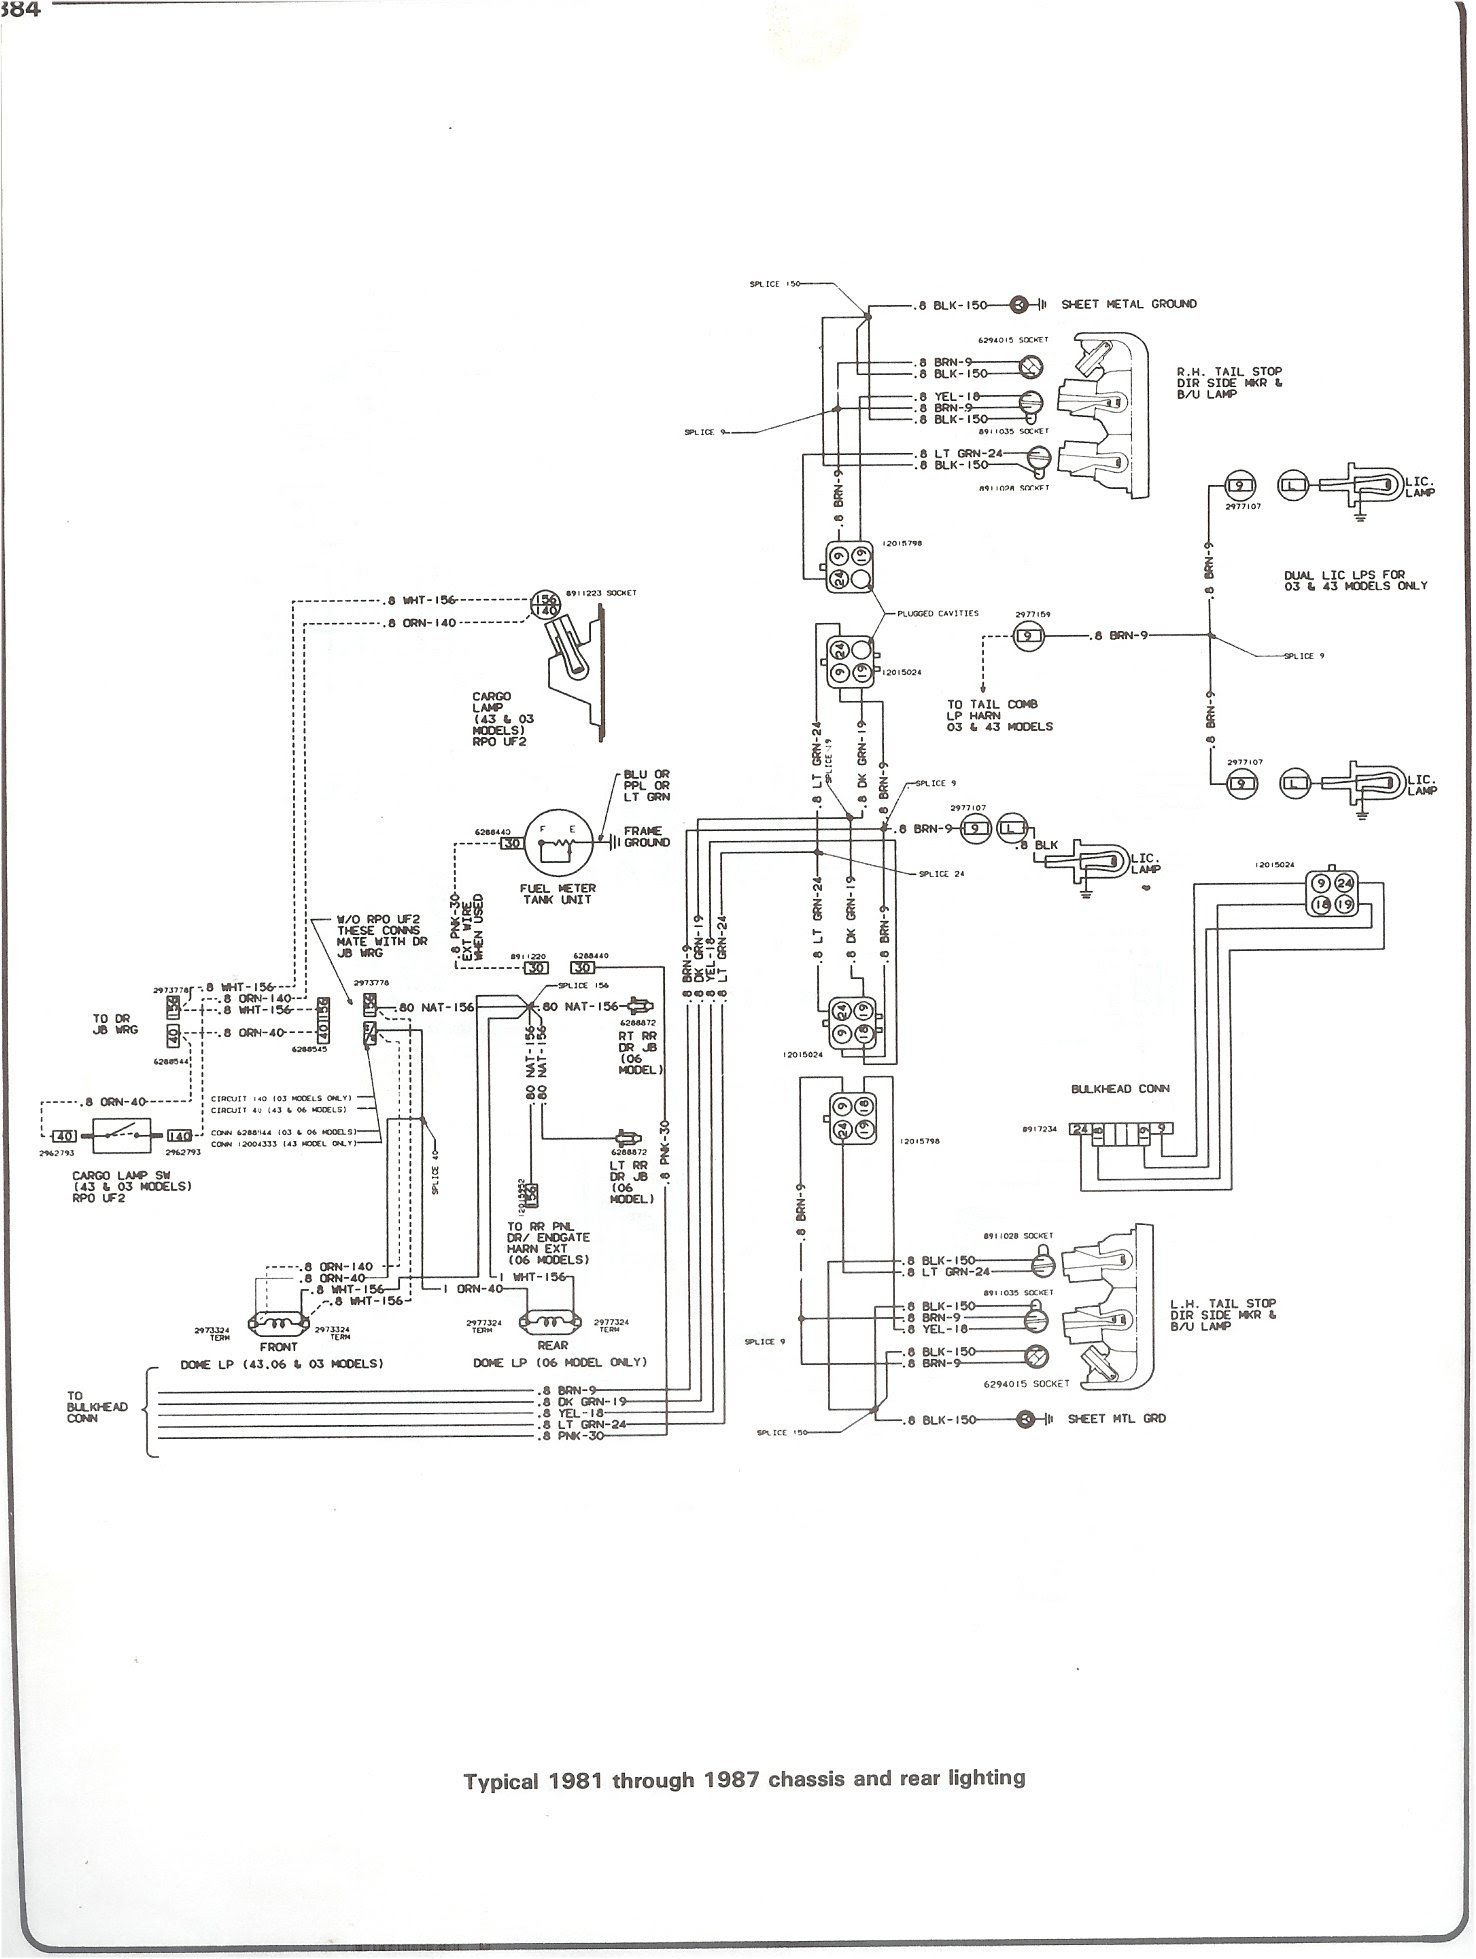 1995 Chevy Suburban Engine Diagram Wiring Diagram Extend Extend Lechicchedimammavale It